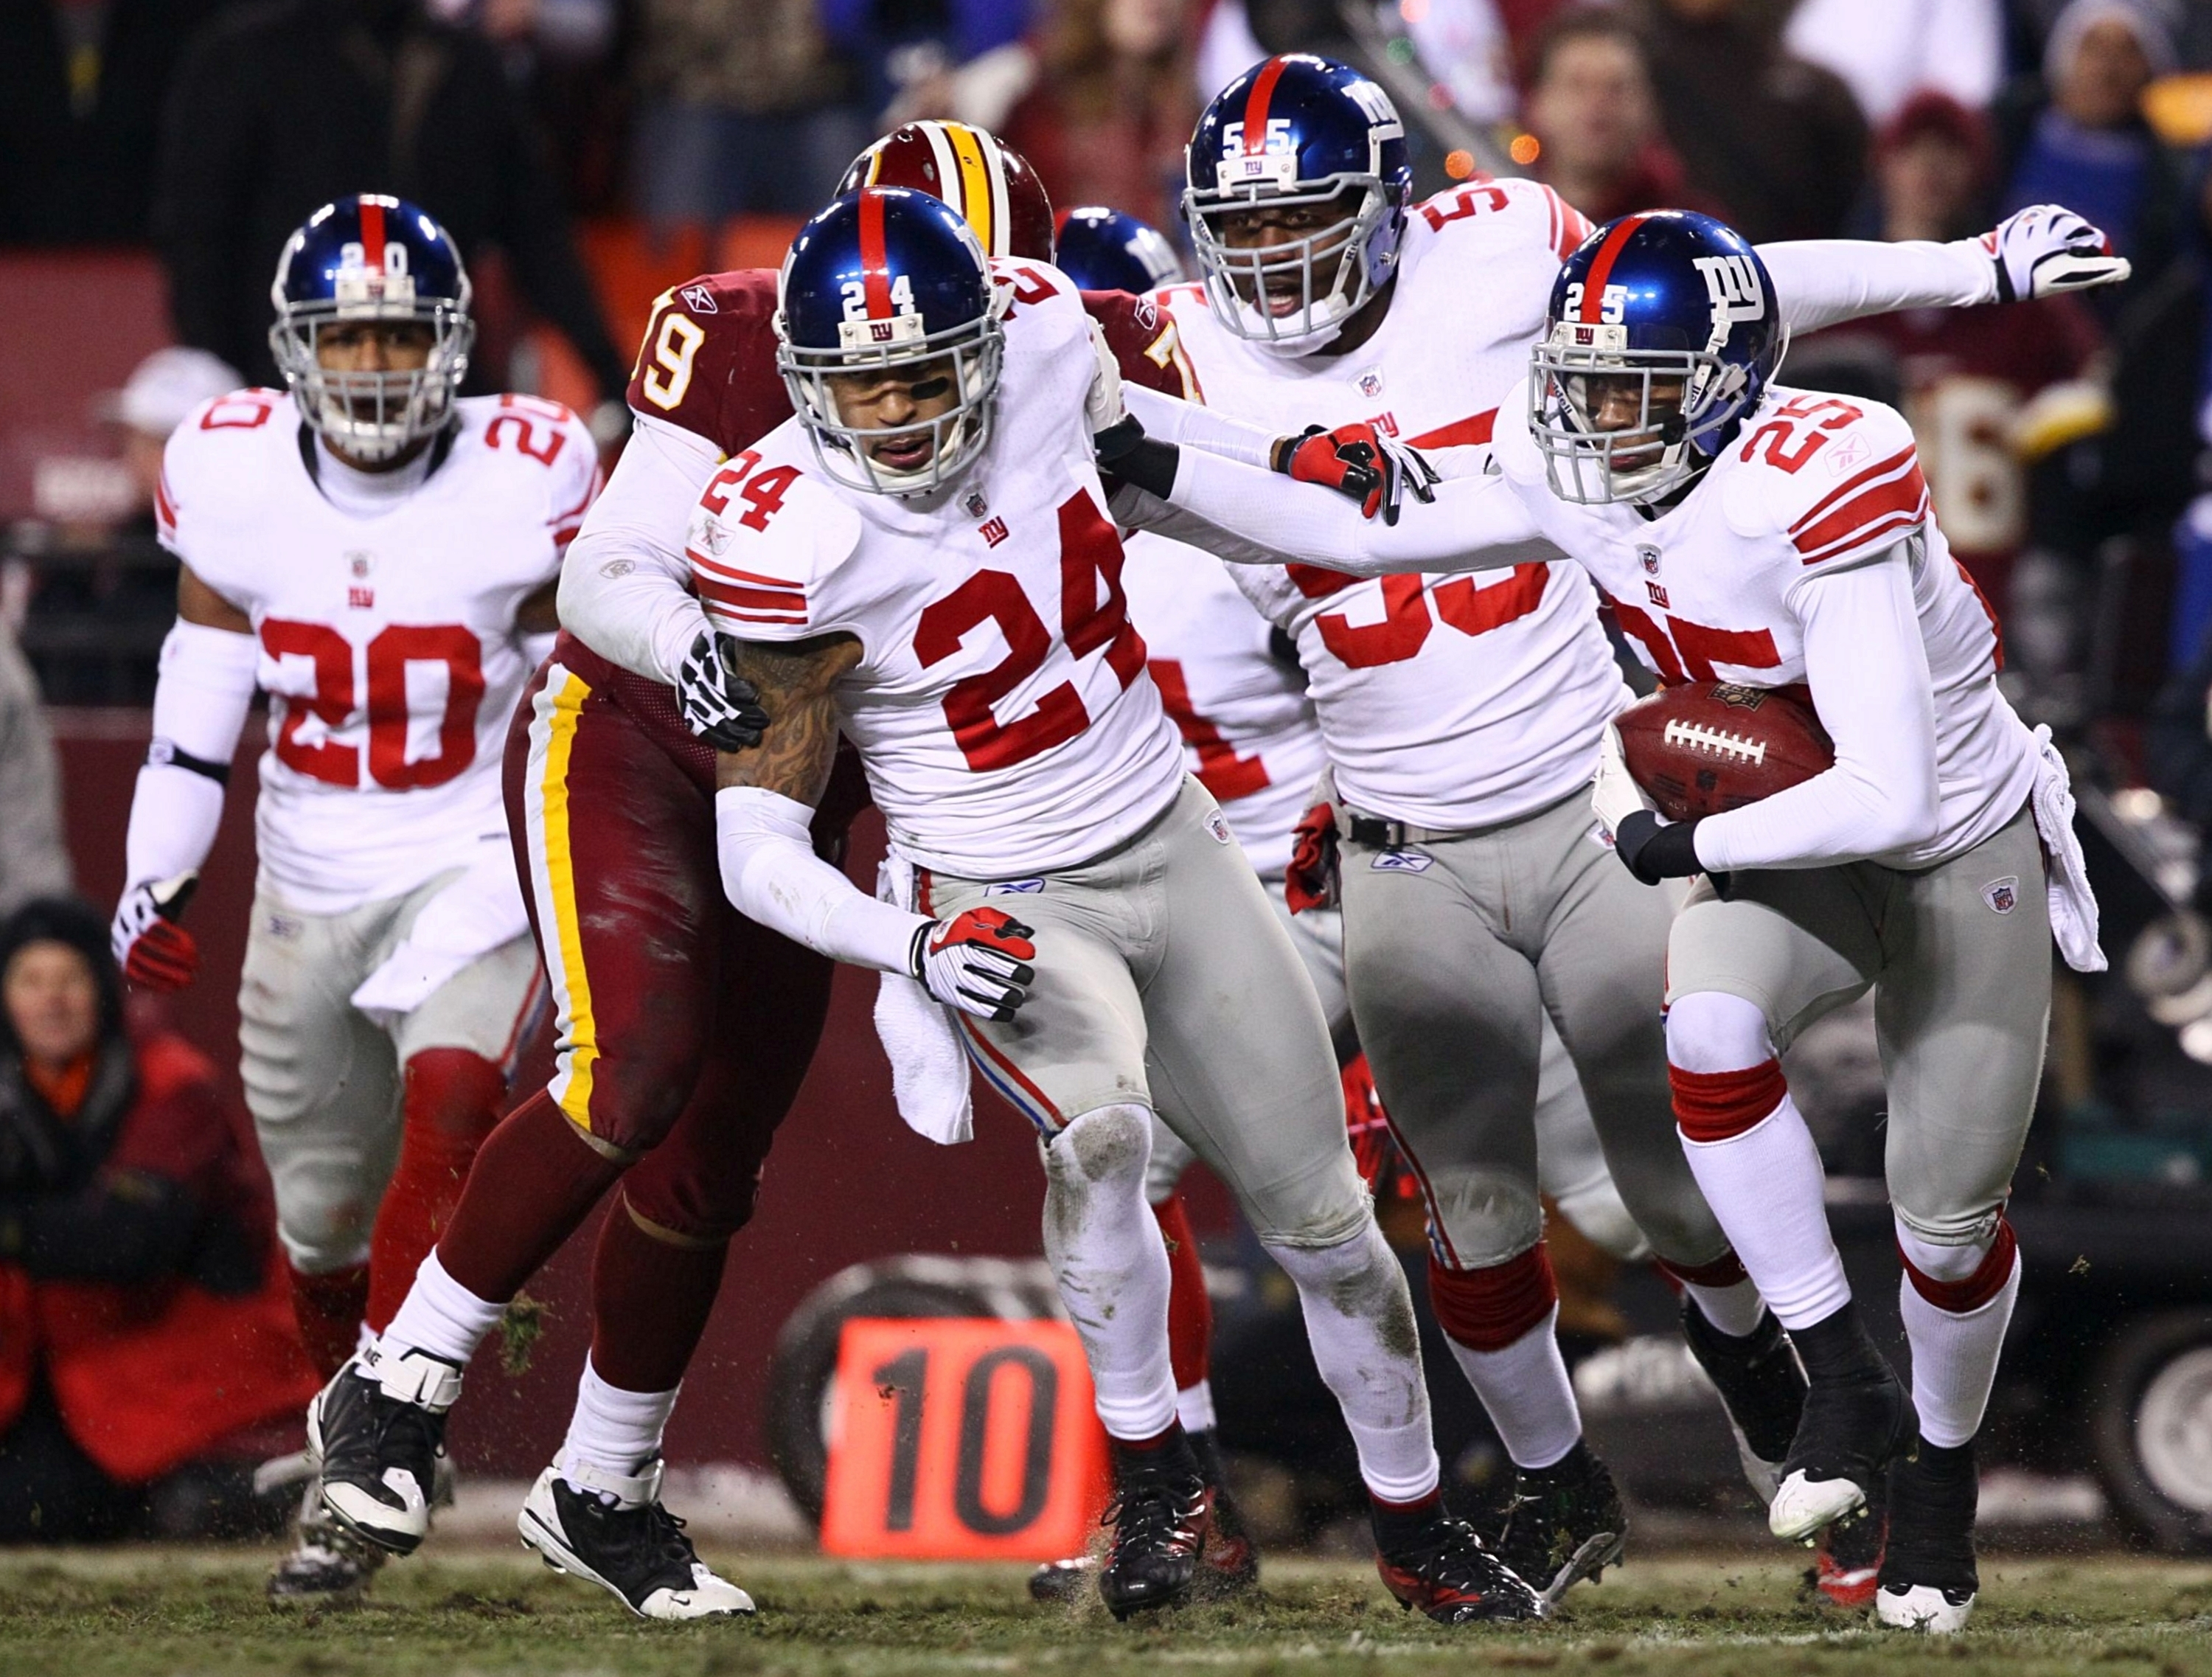 LANDOVER, MD - DECEMBER 21:  Cornerback Bruce Johnson #25 of the New York Giants runs with the ball after intercepting punter Hunter Smith #3 of the Washington Redskins at FedEx Field on December 21, 2009 in Landover, Maryland. (Photo by Win McNamee/Getty